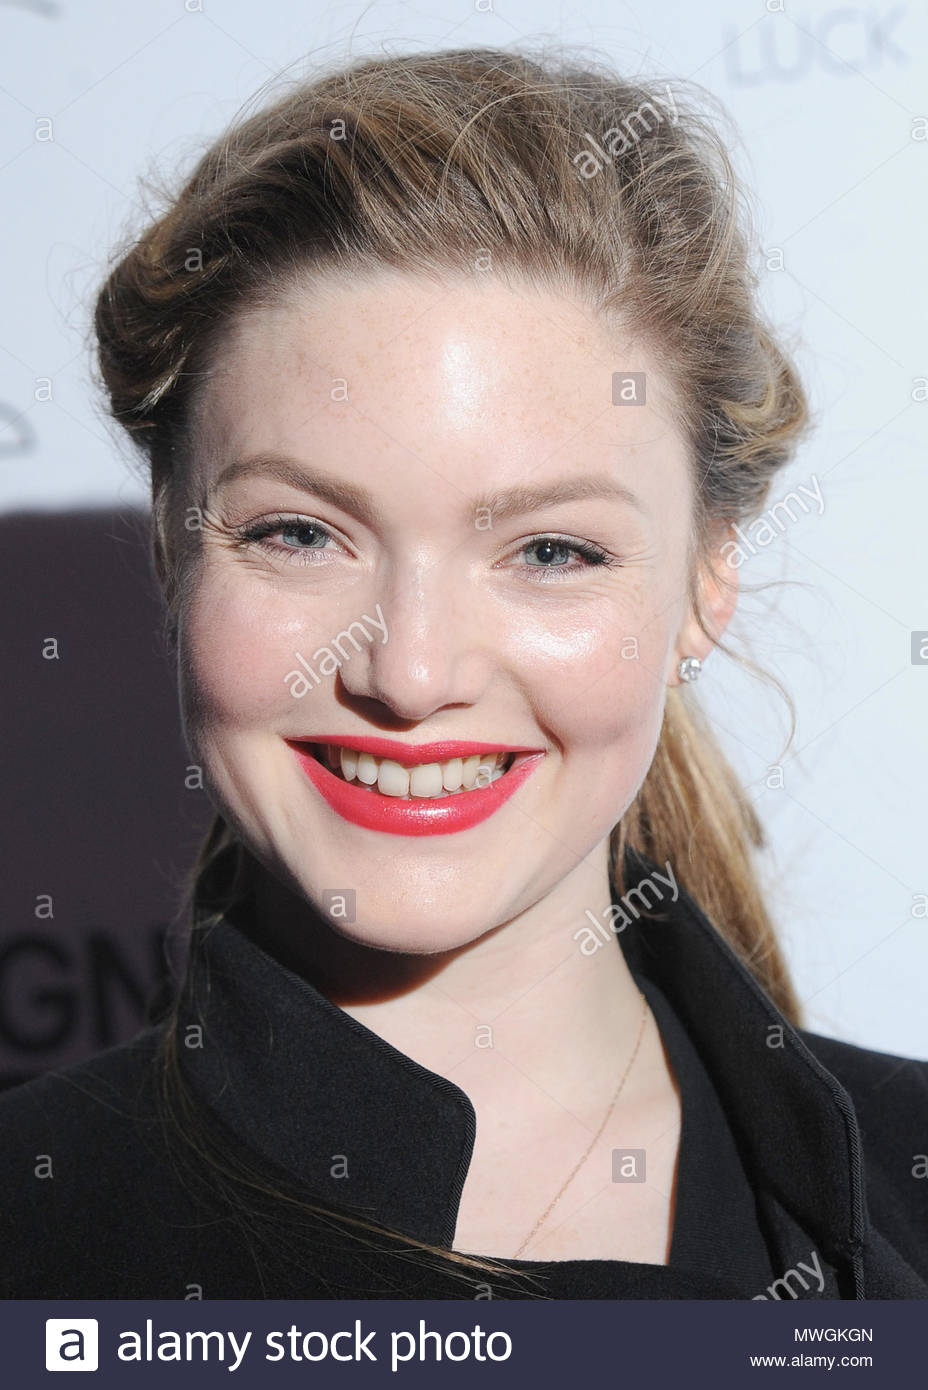 cameltoe Celebrity Holliday Grainger naked photo 2017